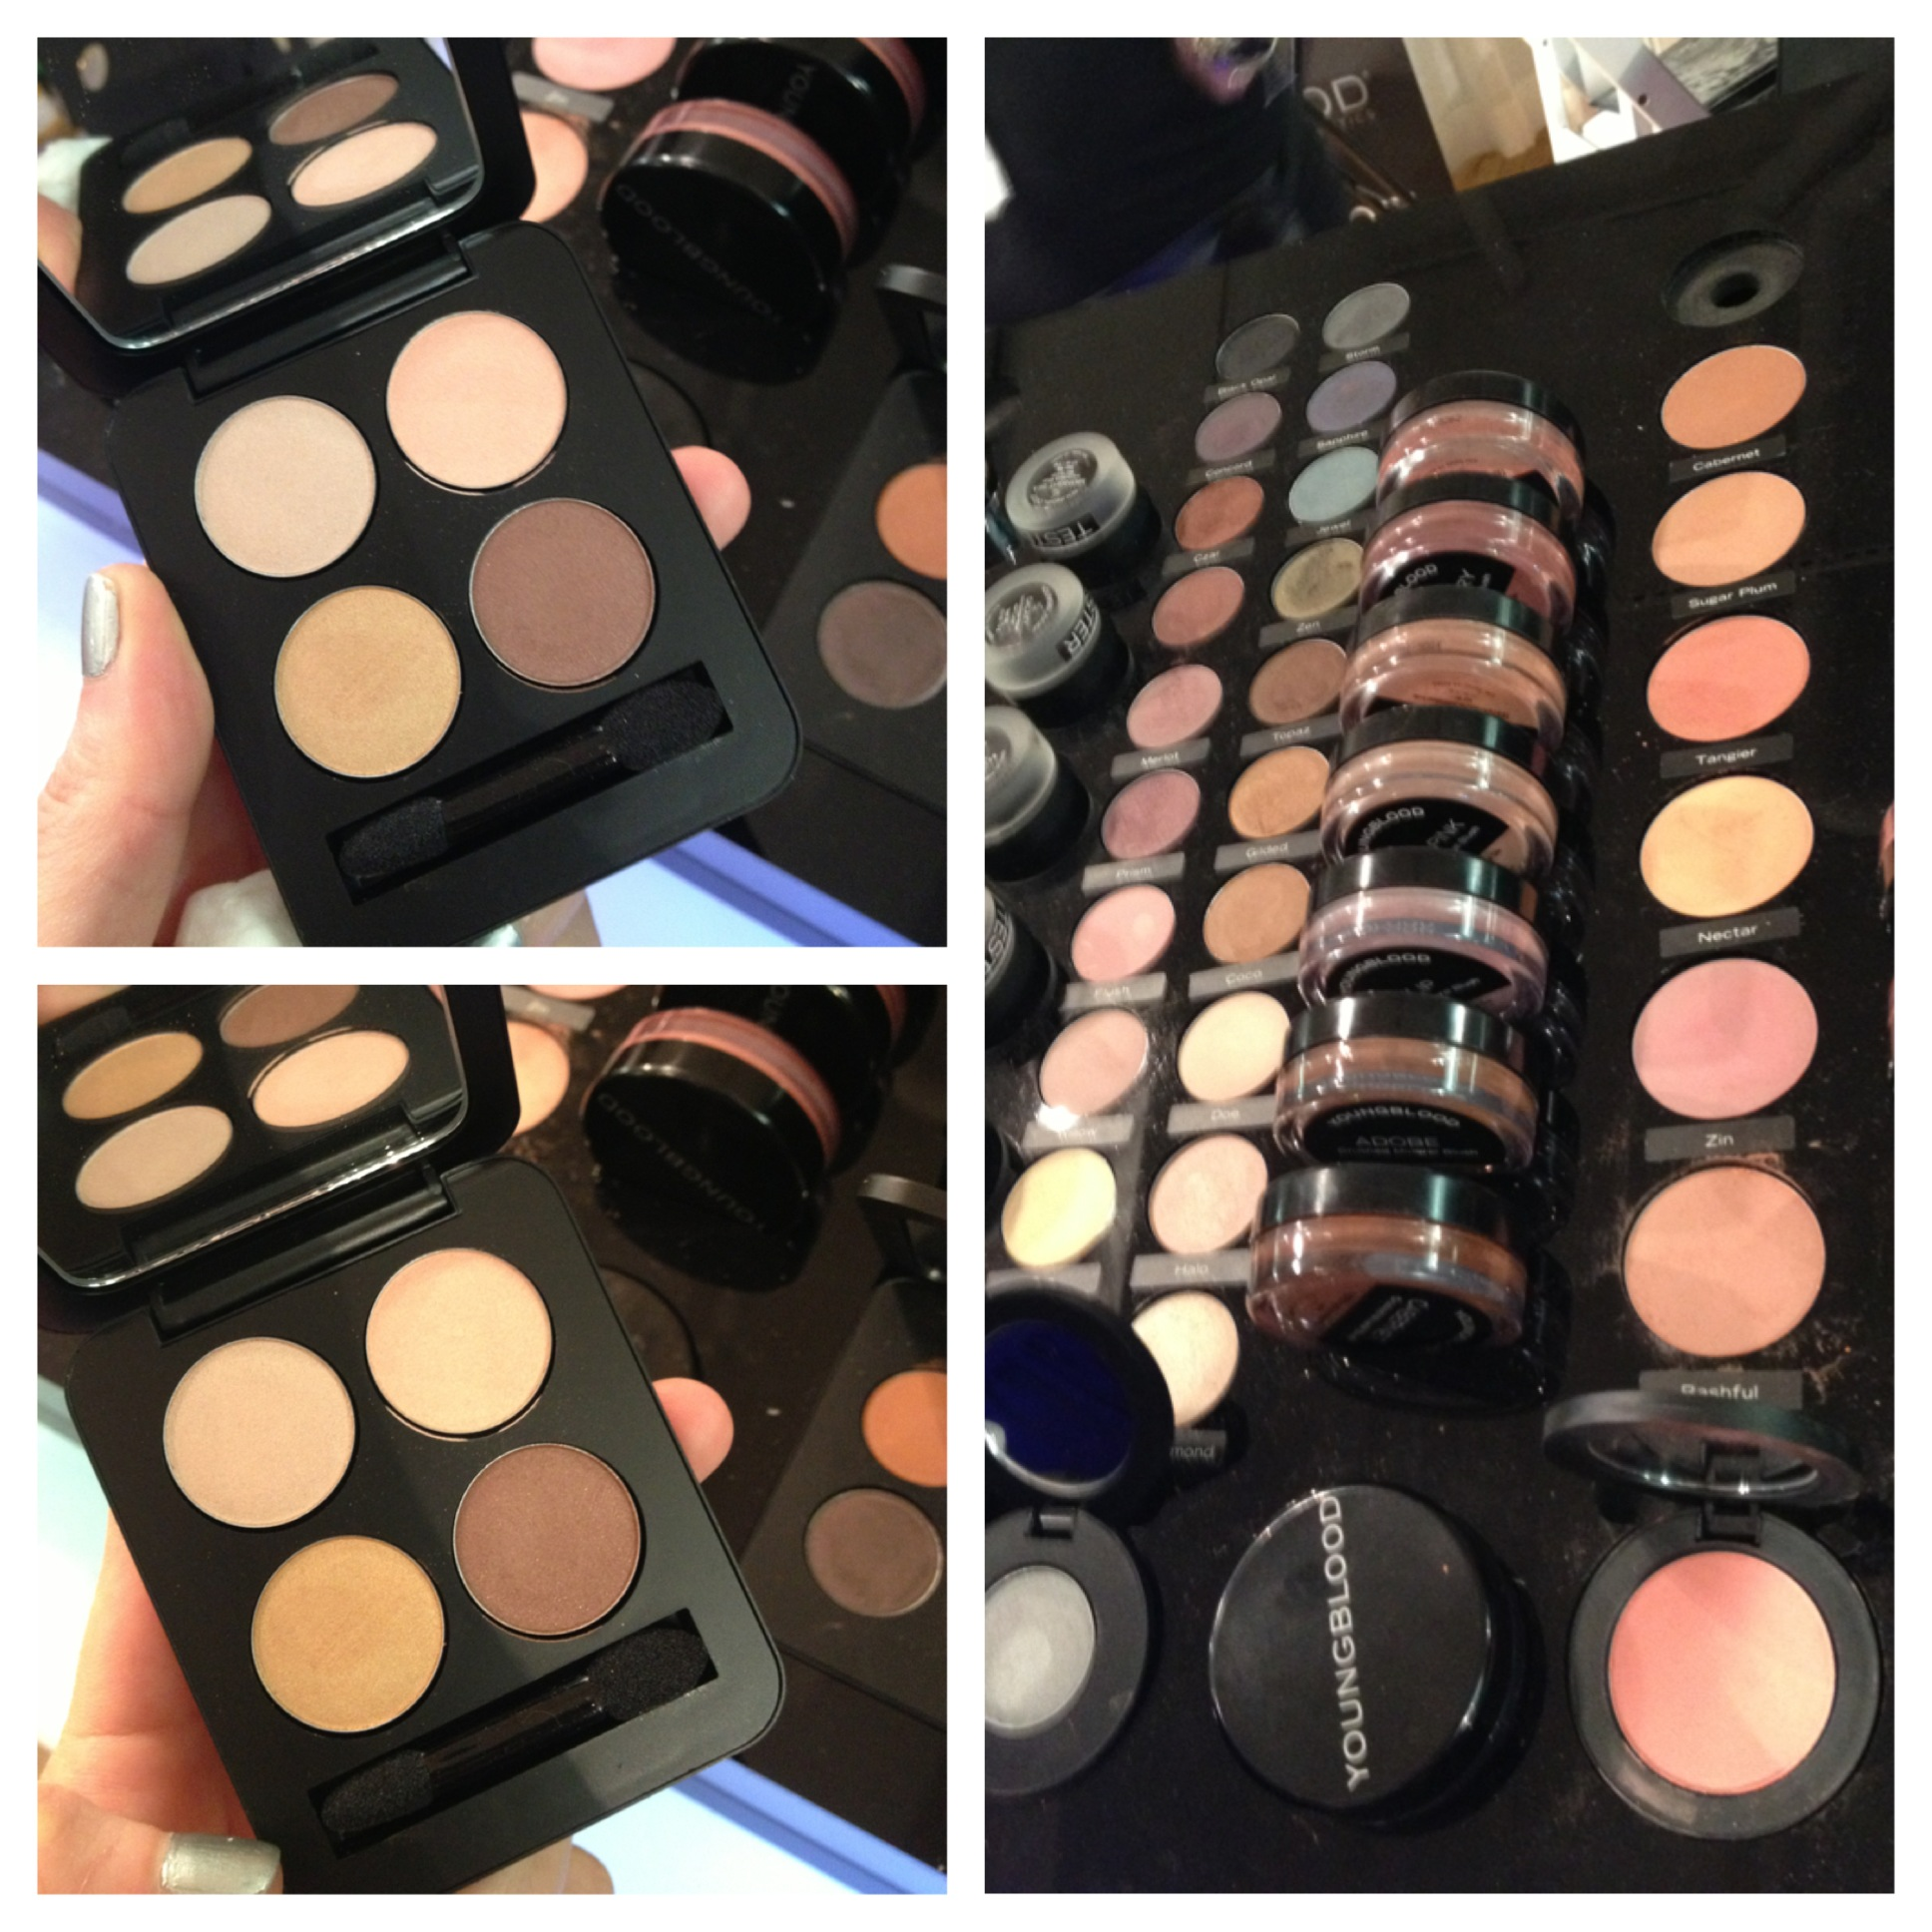 The Makeup Show A Review Thisthatbeauty